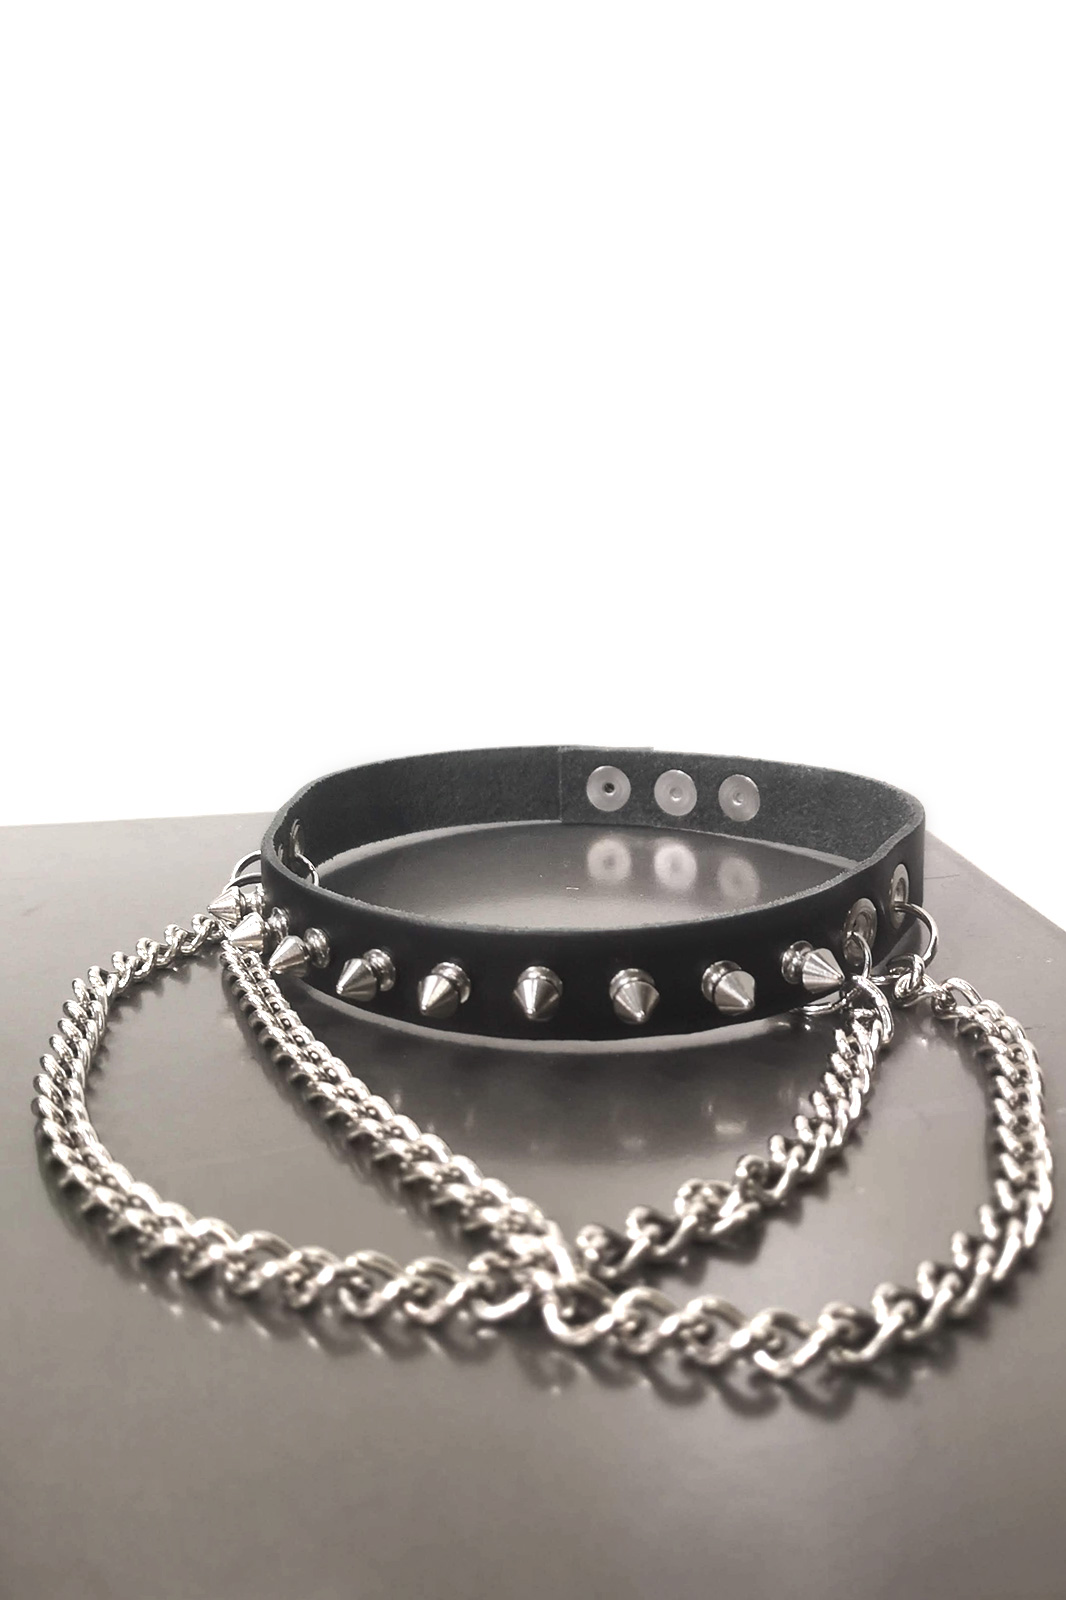 Small Spike Double Chain Leather Choker